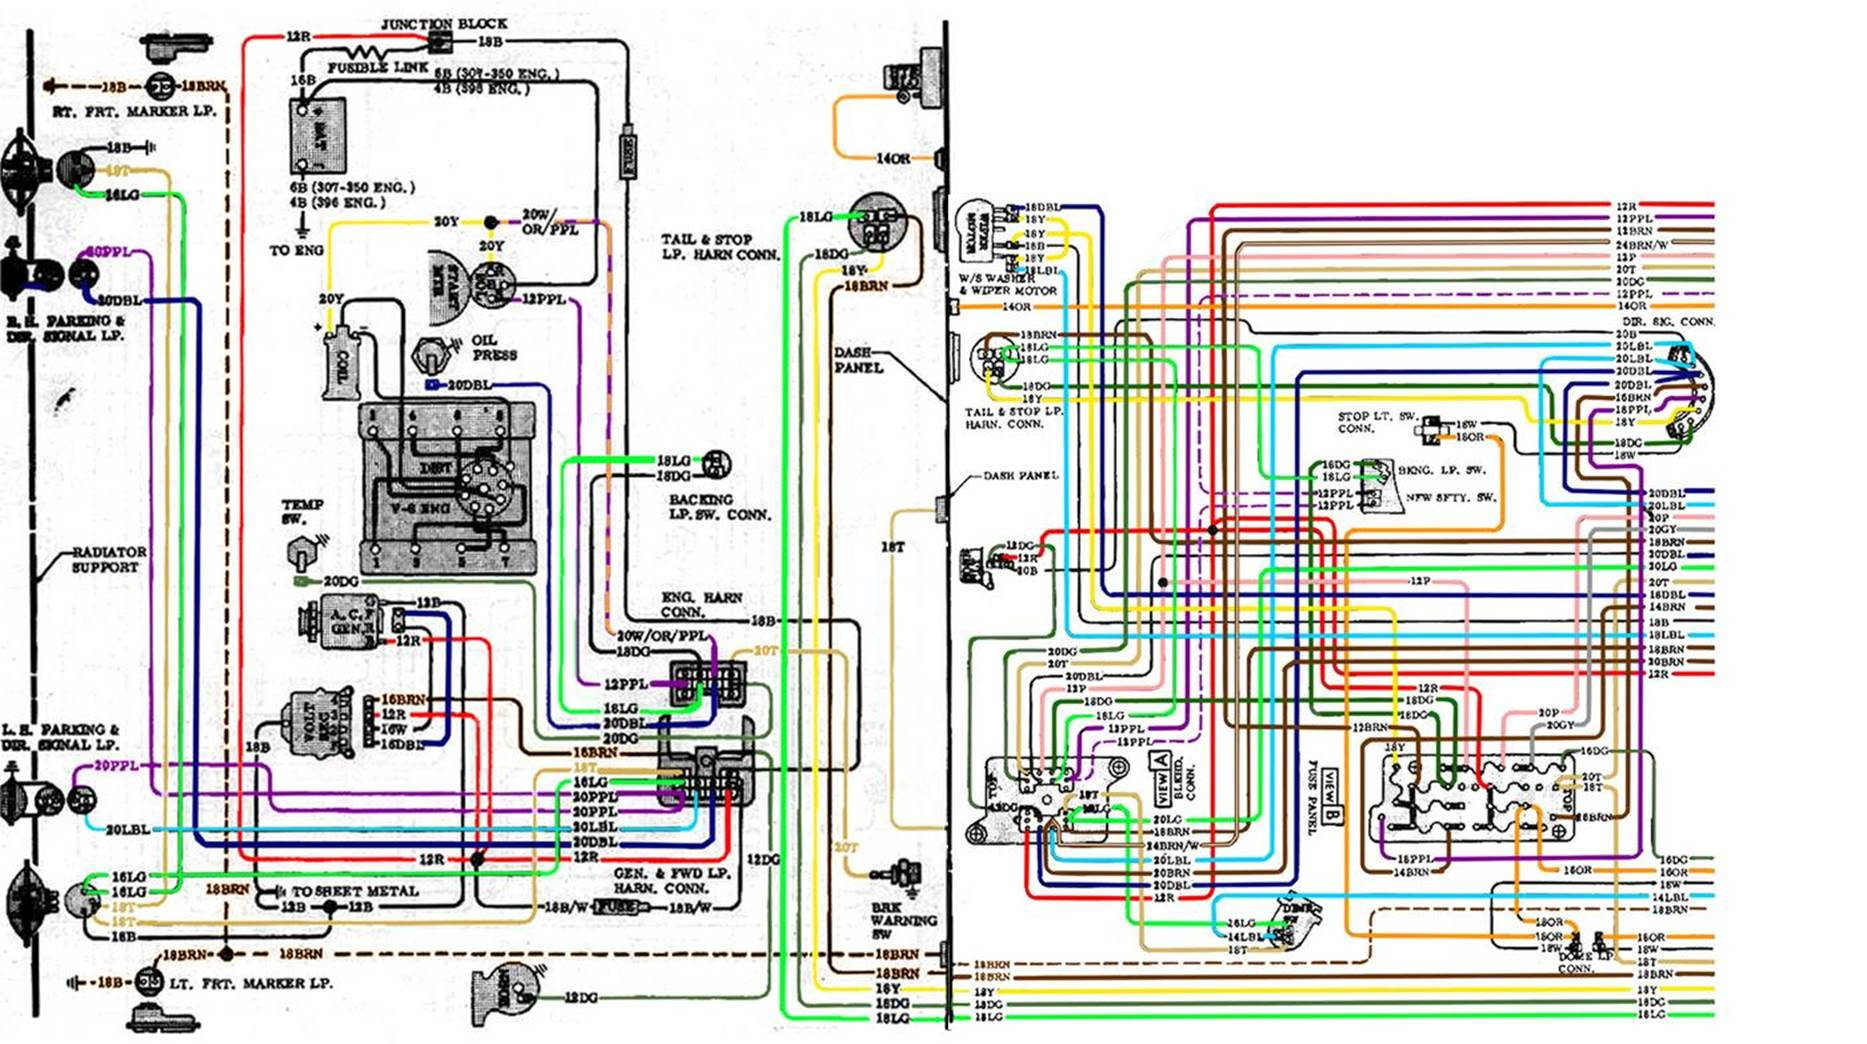 image002 67 72 chevy wiring diagram 1967 chevy c10 fuse box diagram at n-0.co